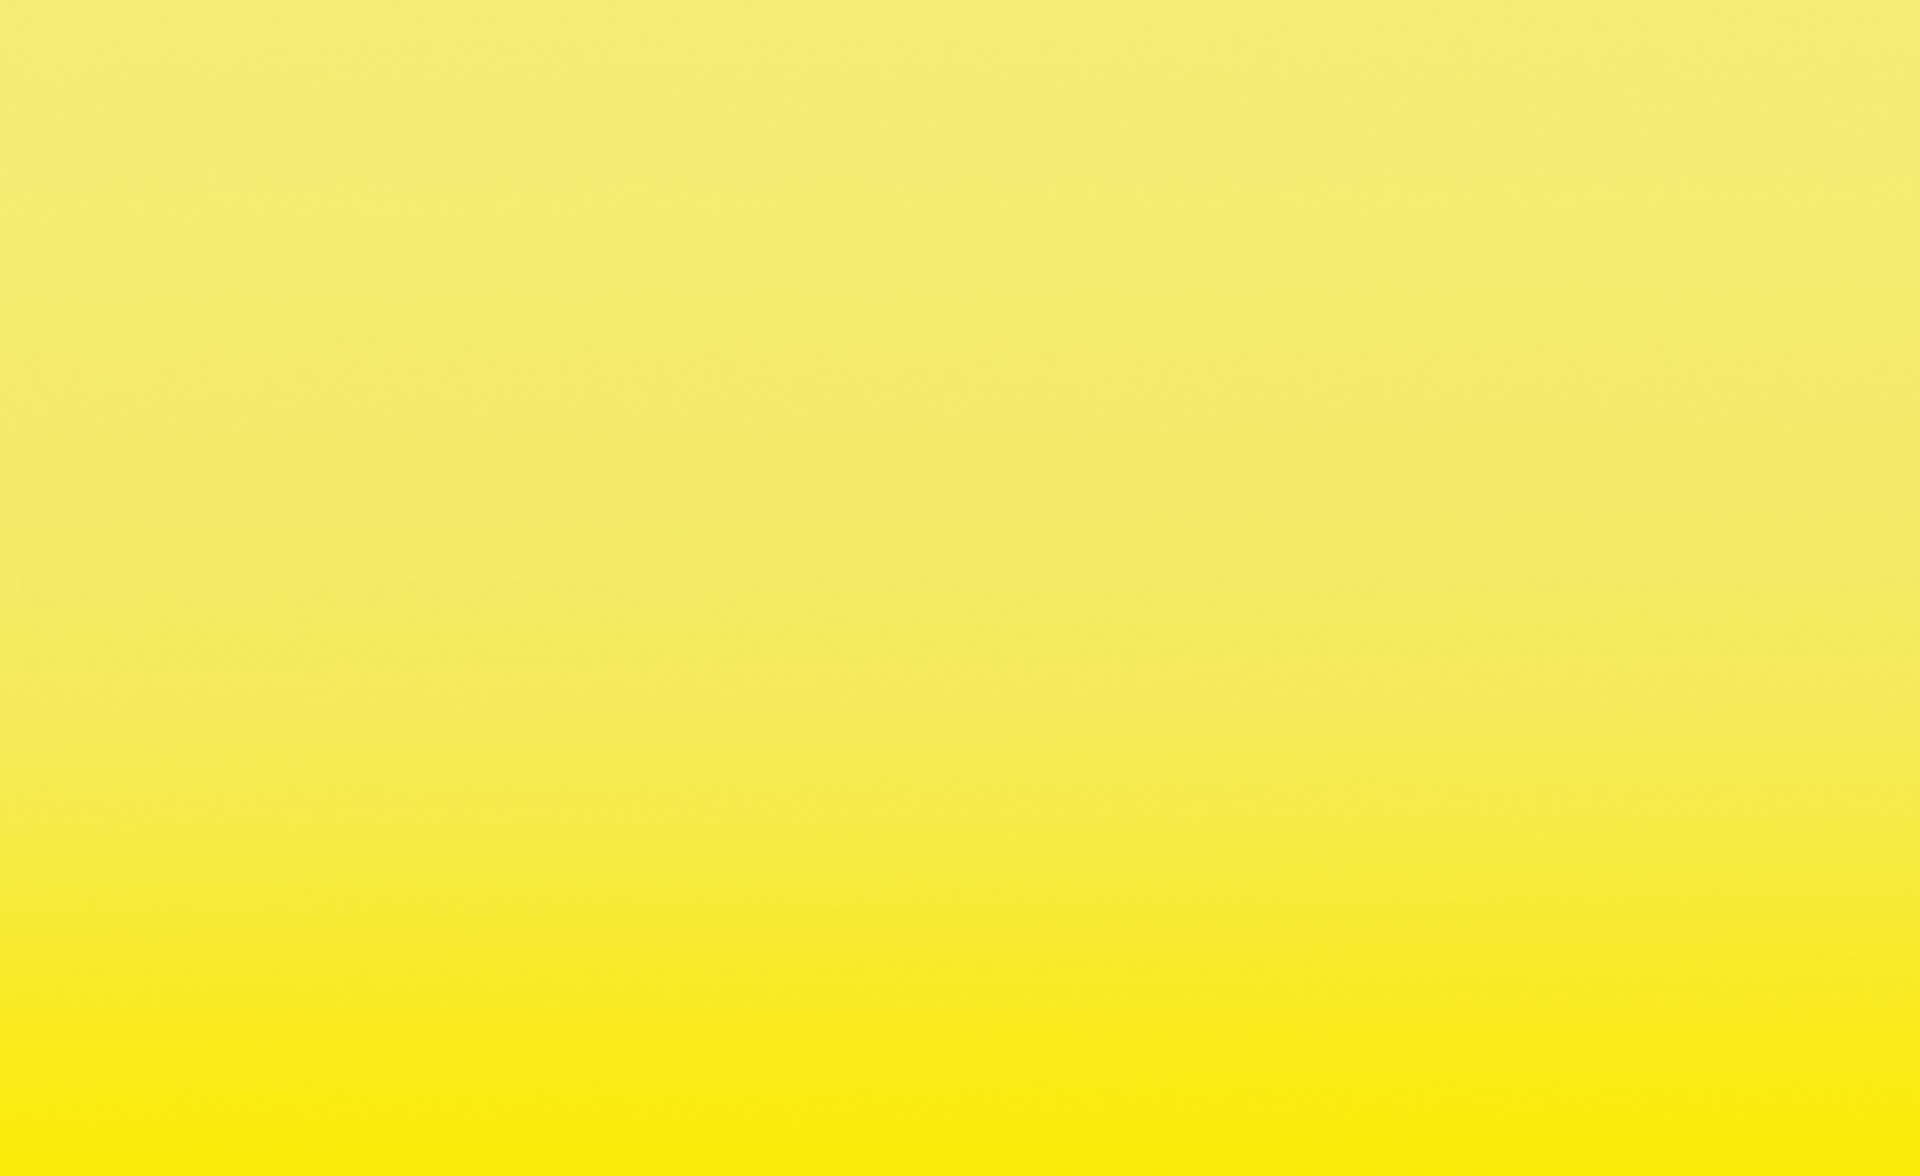 yellow-horizon-gradient-background